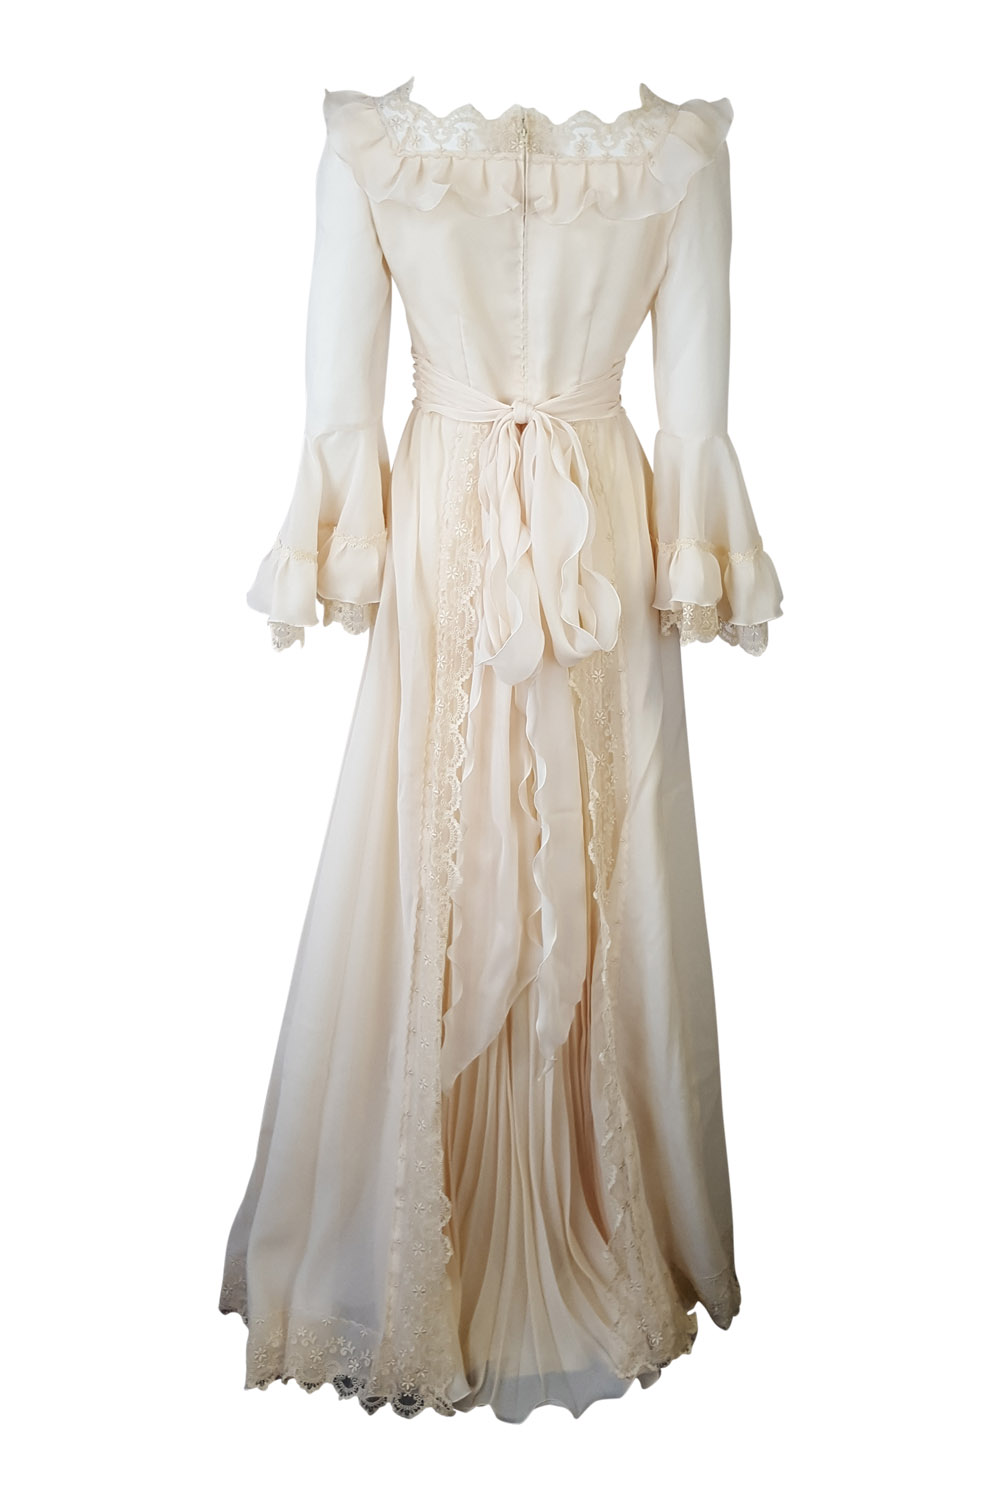 HARRODS* VINTAGE IVORY COTTON BLEND WEDDING DRESS (UK 8) | eBay